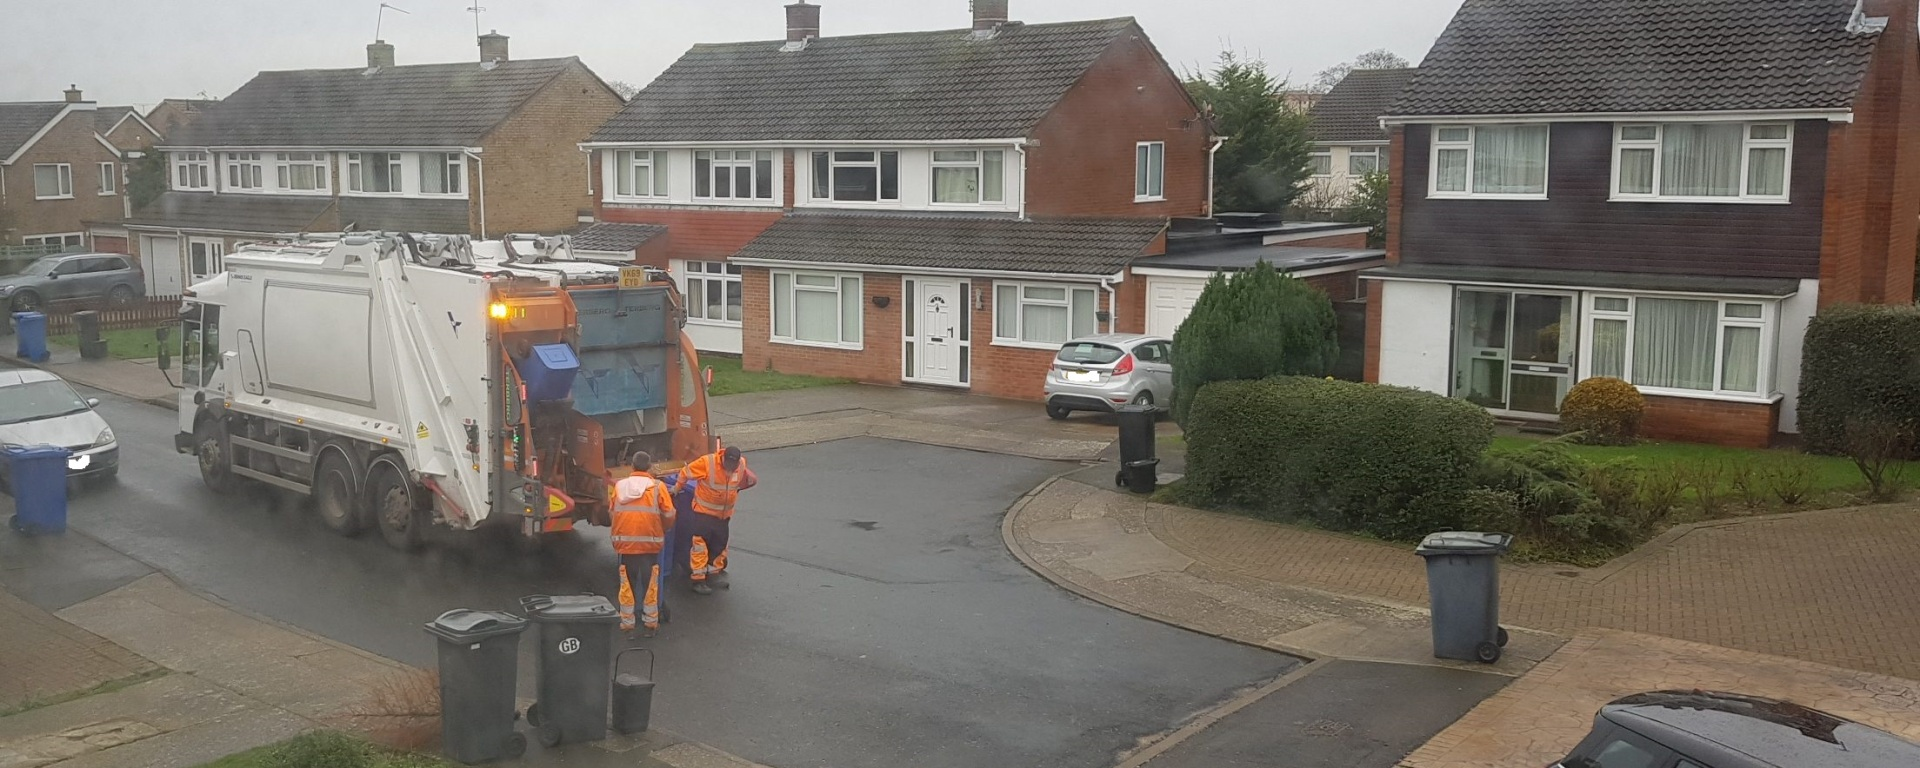 bin lorry collecting waste no plates